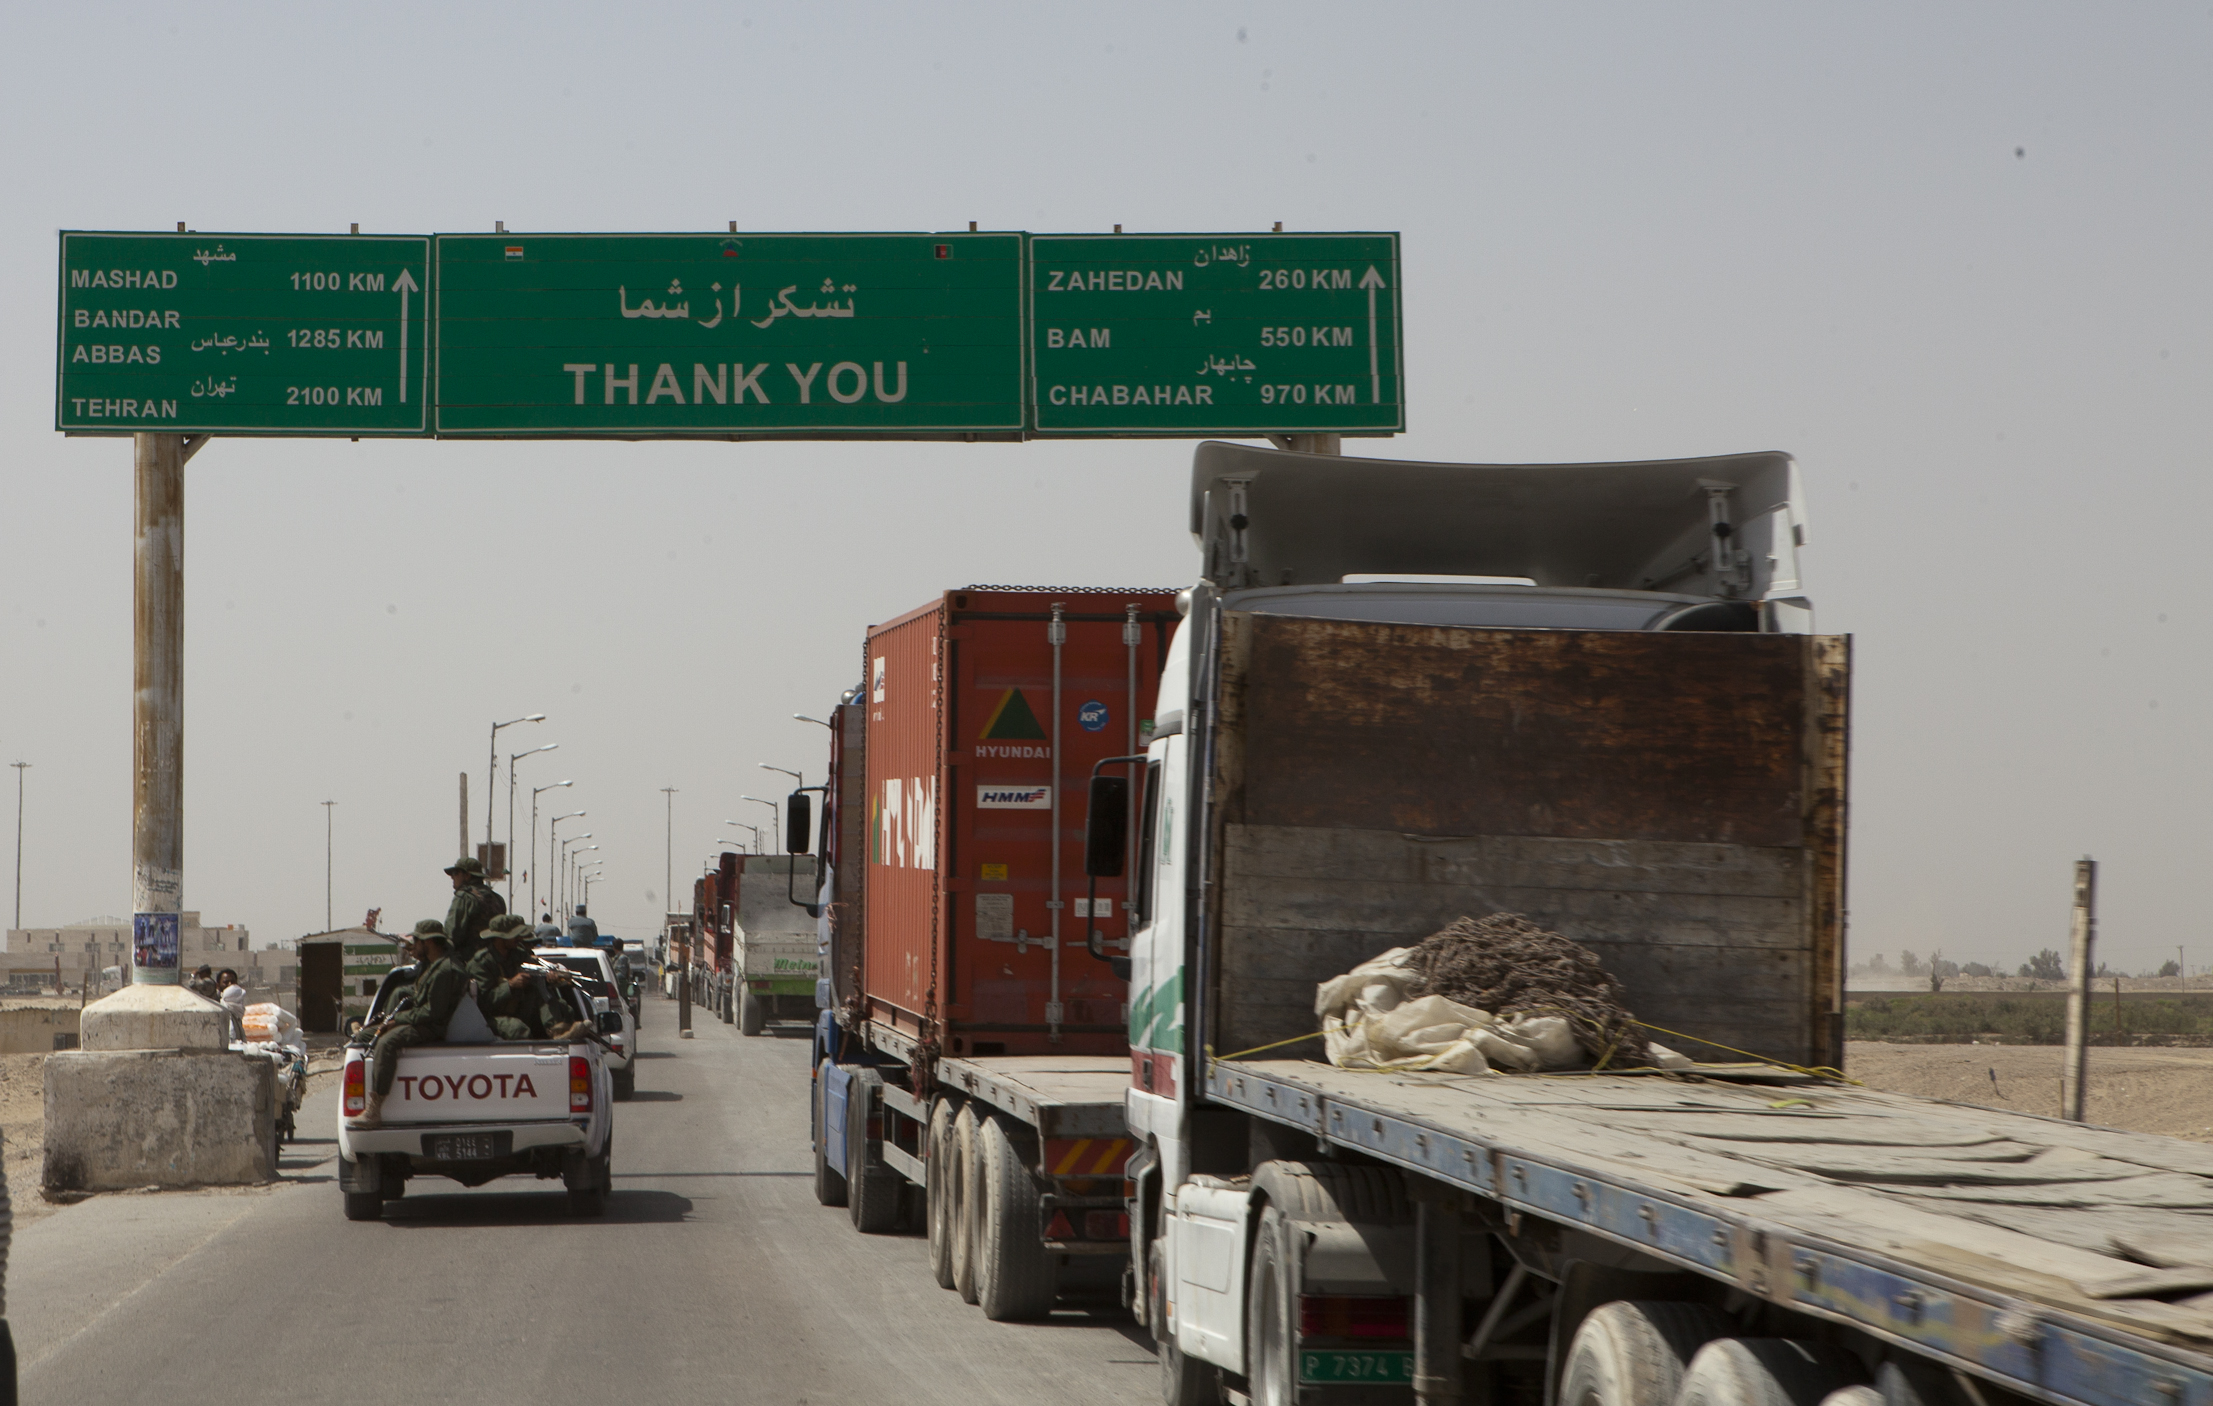 Trucks wait to cross the Afghanistan-Iran border in Zaranj, Afghanistan, May 10, 2011. The crossing is part of a busy trade route between Central Asia and the Middle East. (U.S. Marine Corps photo by Sgt. Mallory S. VanderSchans/Released)